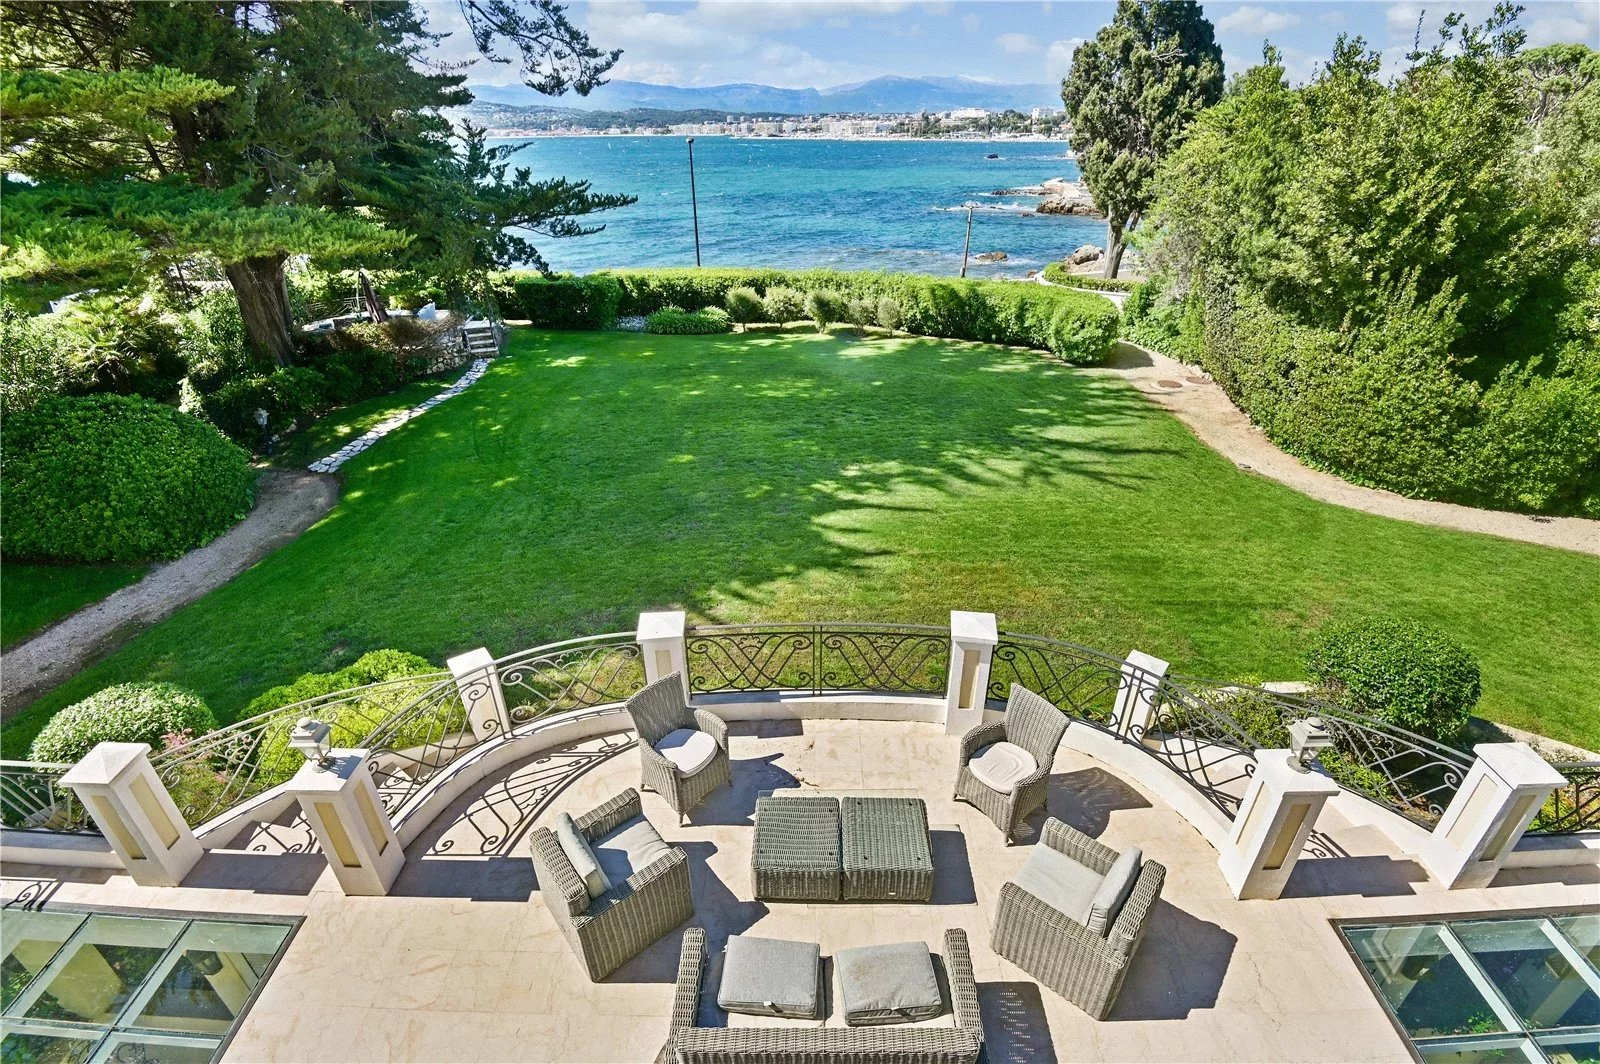 Outstanding waterfront property, set in landscaped grounds with heated pool, pool house, tennis cour